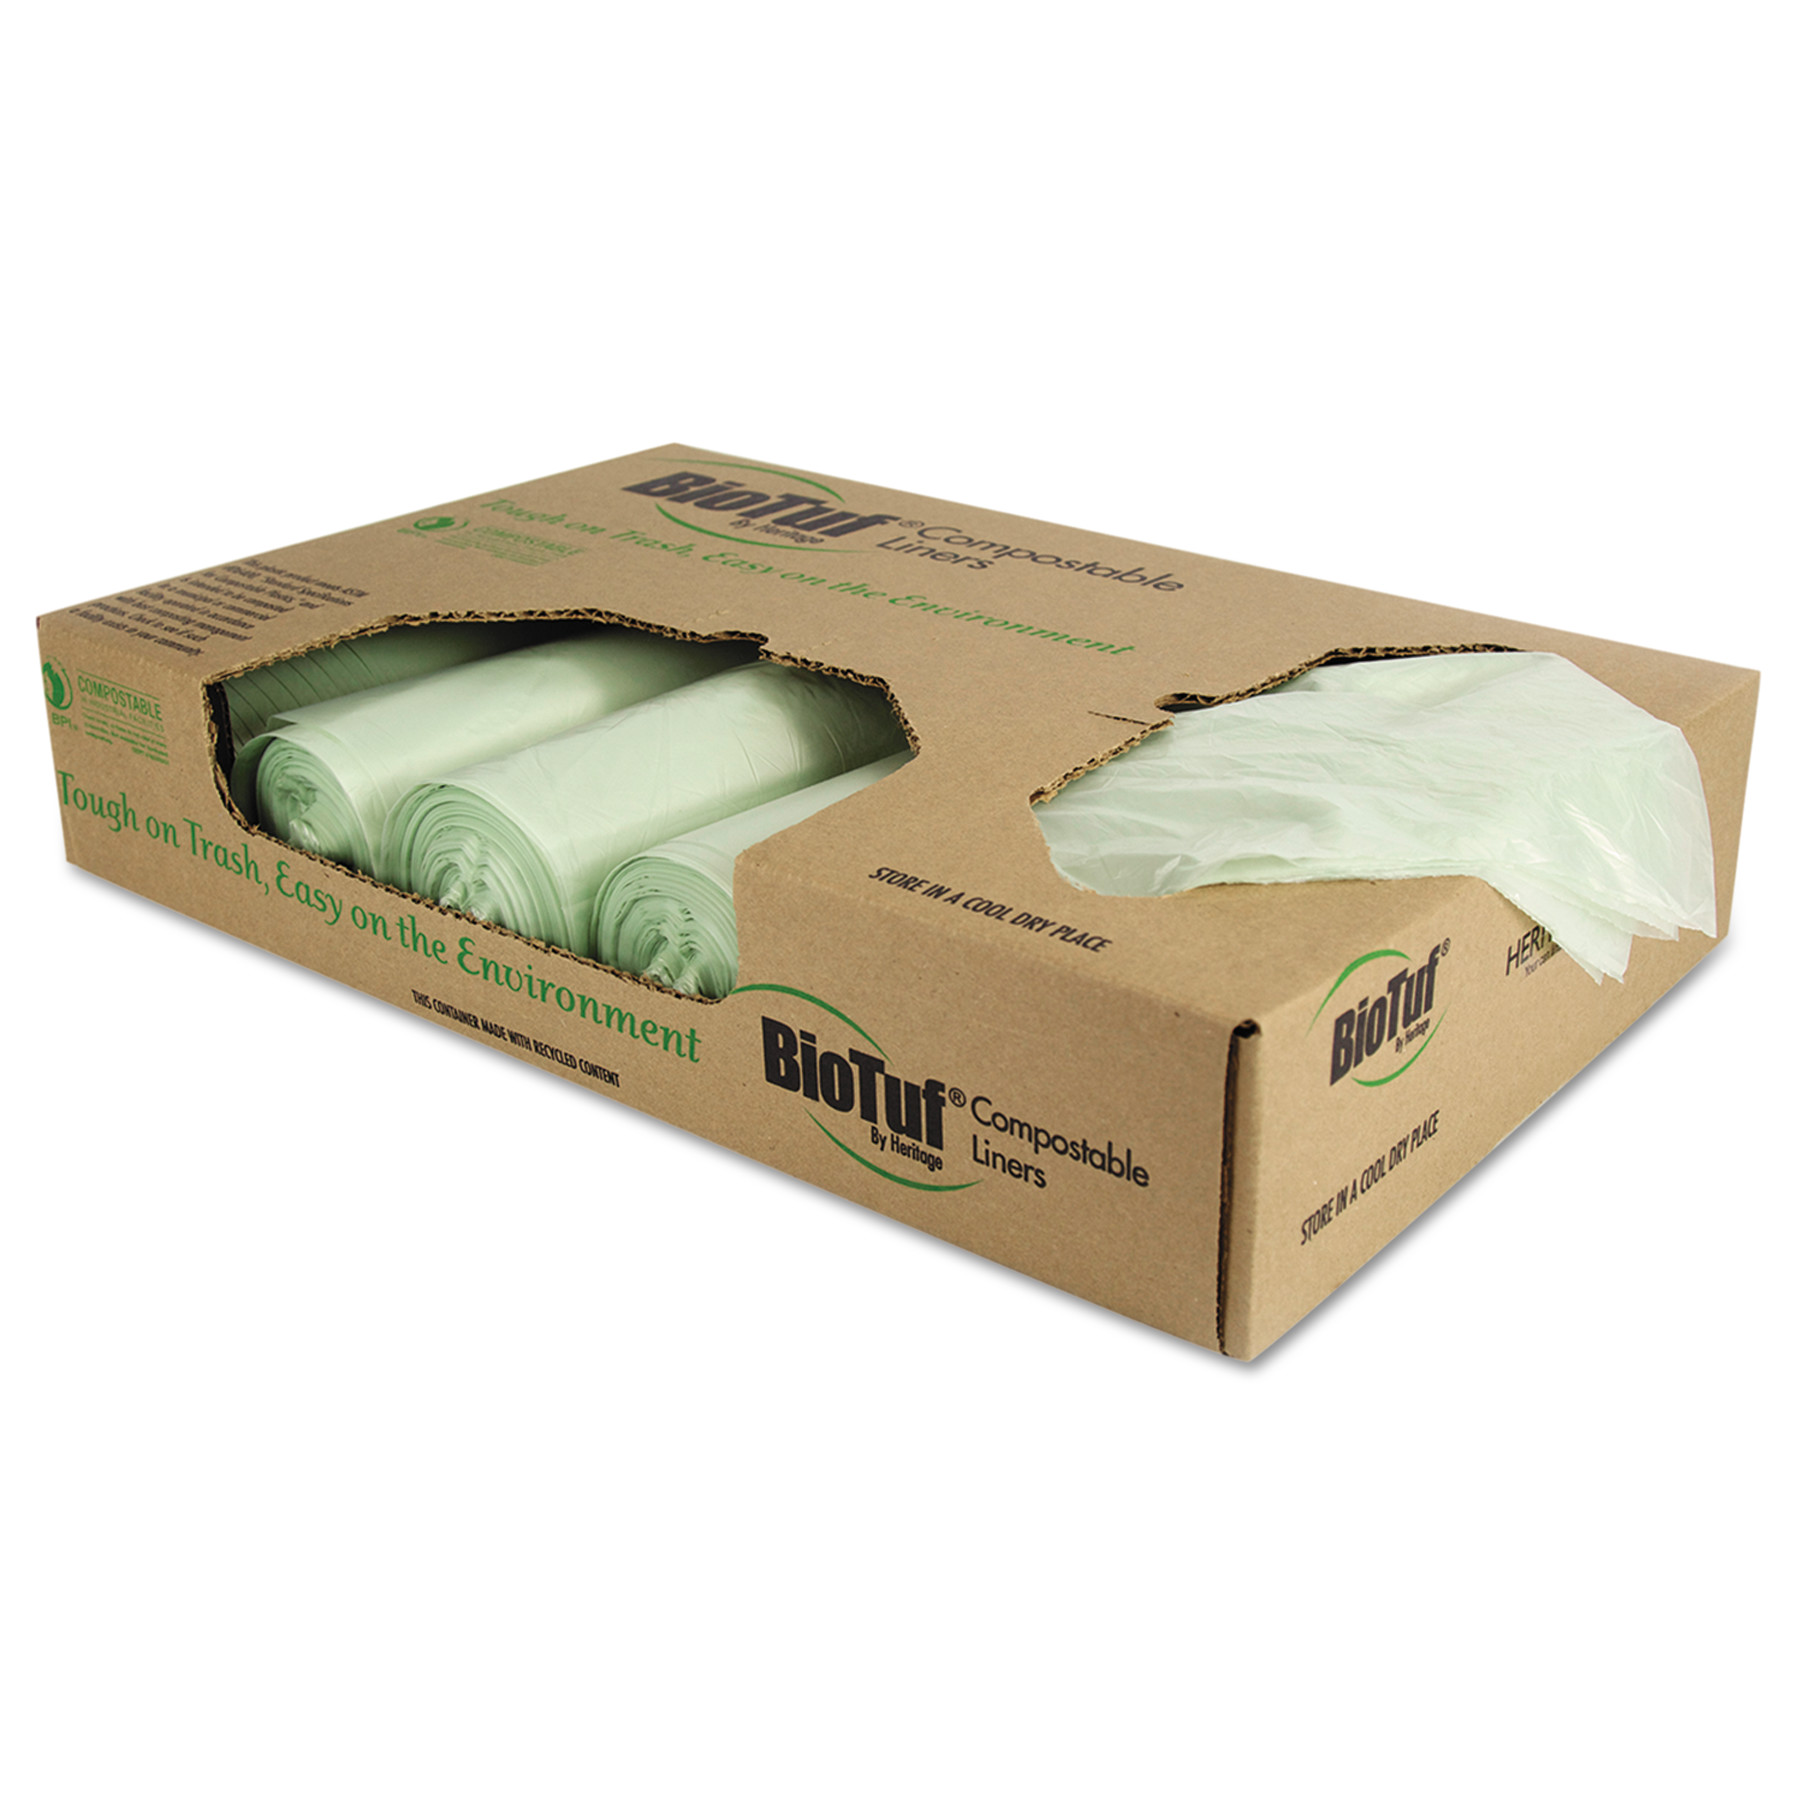 Heritage Biotuf Compostable Trash Bags, 32 gal, 1 mil, 34 x 48, Light Green, 100/Carton